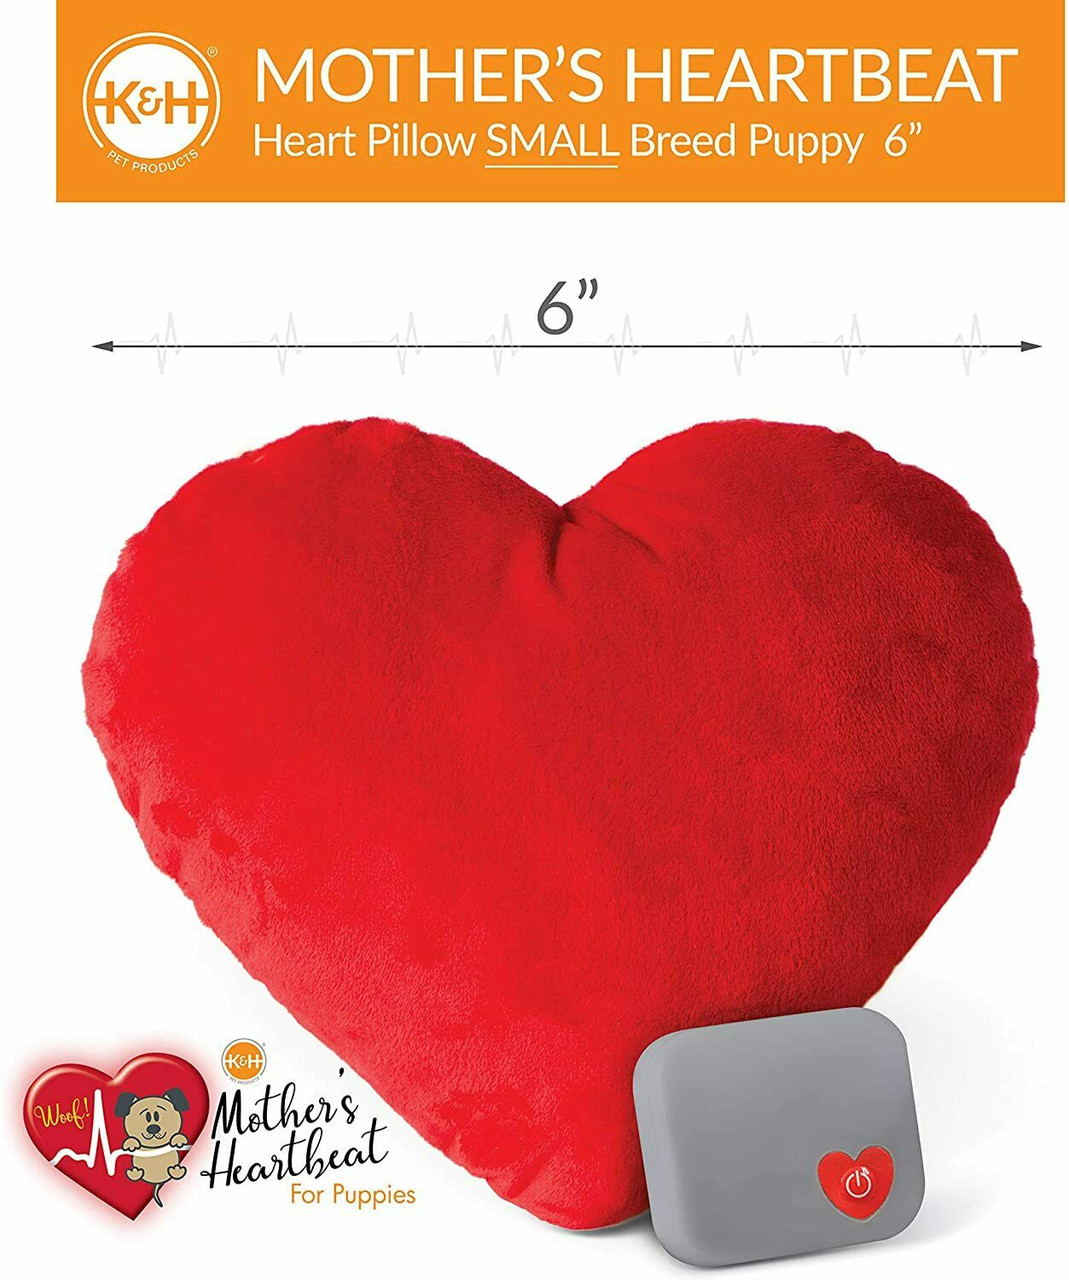 k h pet mother s heartbeat plush dog heart pillow small red 6 x 5